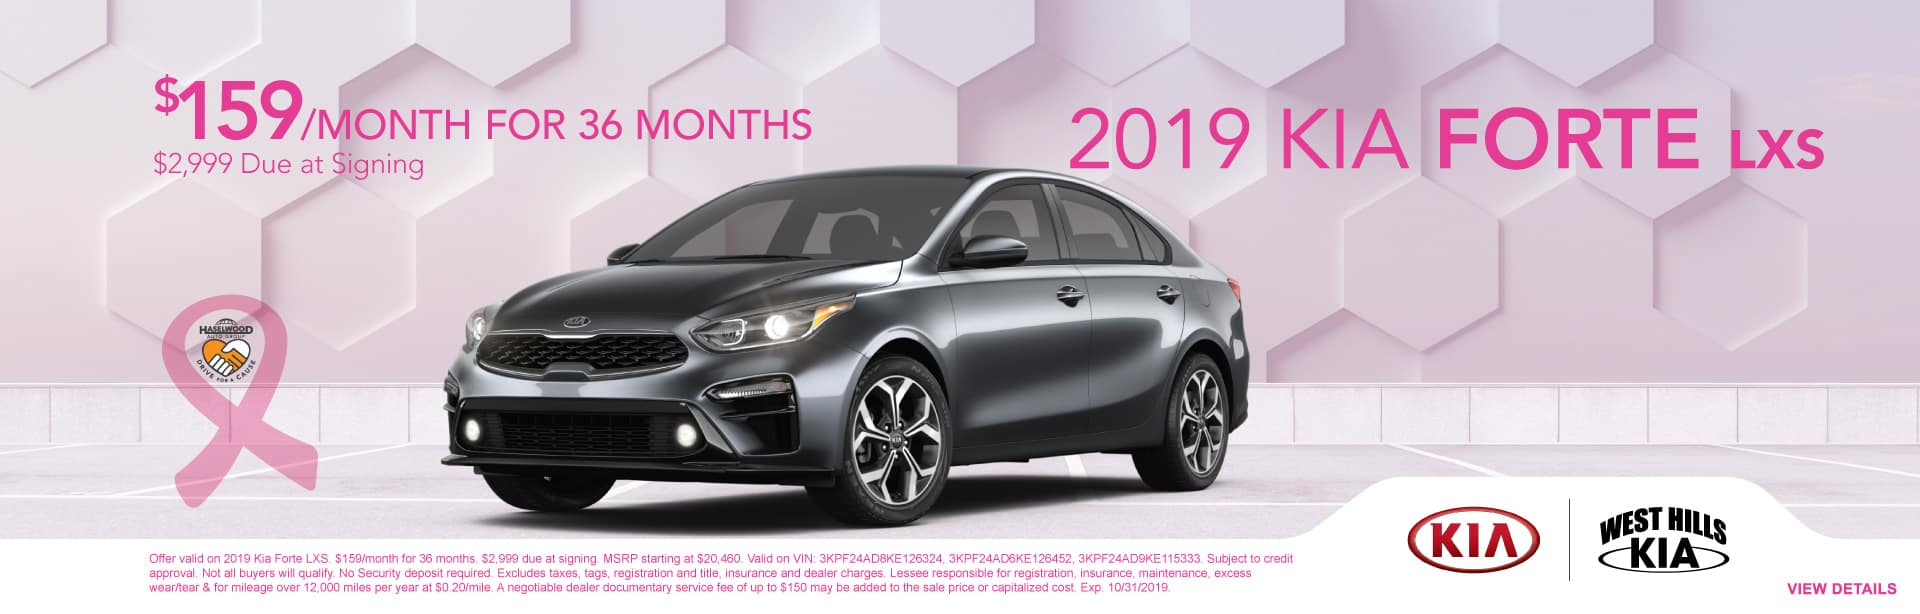 2019 Kia Forte LXS $159/month for 36 months  $2,999 Due at Signing   Offer valid on 2019 Kia Forte LXS. $159/month for 36 months. $2,999 due at signing. MSRP starting at $20,460. Valid on VIN: 3KPF24AD8KE126324, 3KPF24AD6KE126452, 3KPF24AD9KE115333. Subject to credit approval. Not all buyers will qualify. No Security deposit required. Excludes taxes, tags, registration and title, insurance and dealer charges. Lessee responsible for registration, insurance, maintenance, excess wear/tear & for mileage over 12,000 miles per year at $0.20/mile. A negotiable dealer documentary service fee of up to $150 may be added to the sale price or capitalized cost. Exp. 10/31/2019.